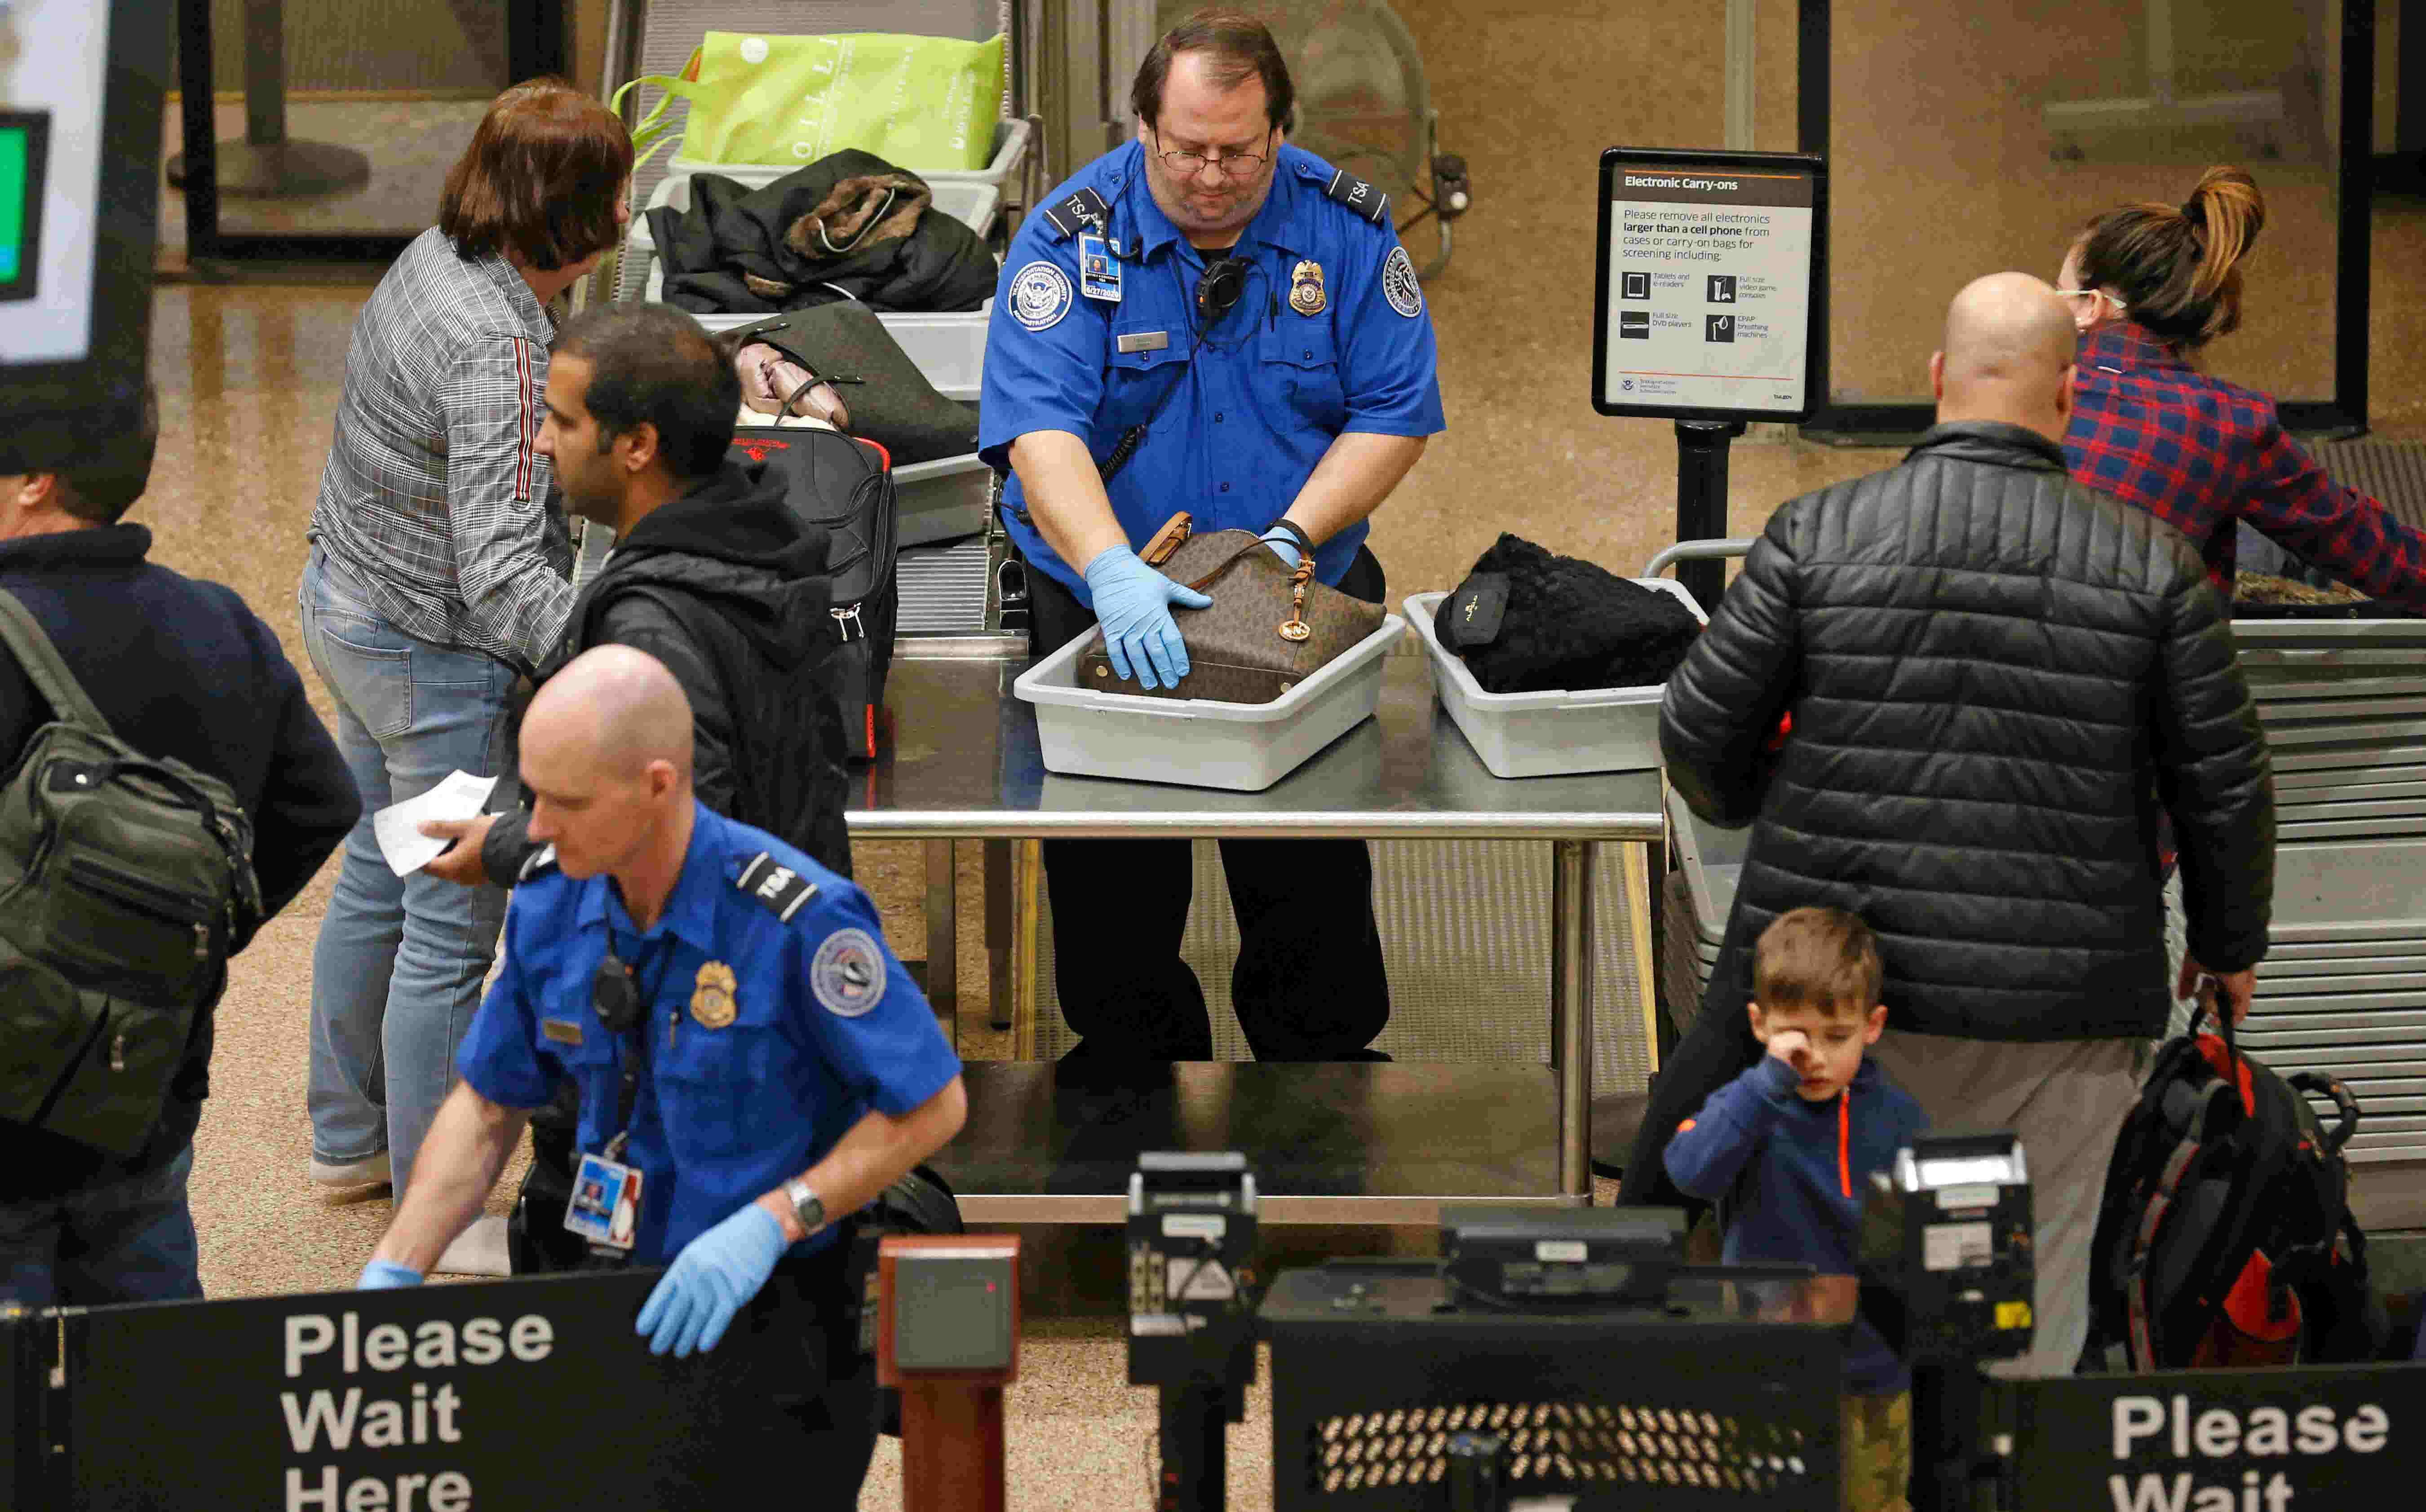 New TSA scanners will allow you to keep laptop in carry-on